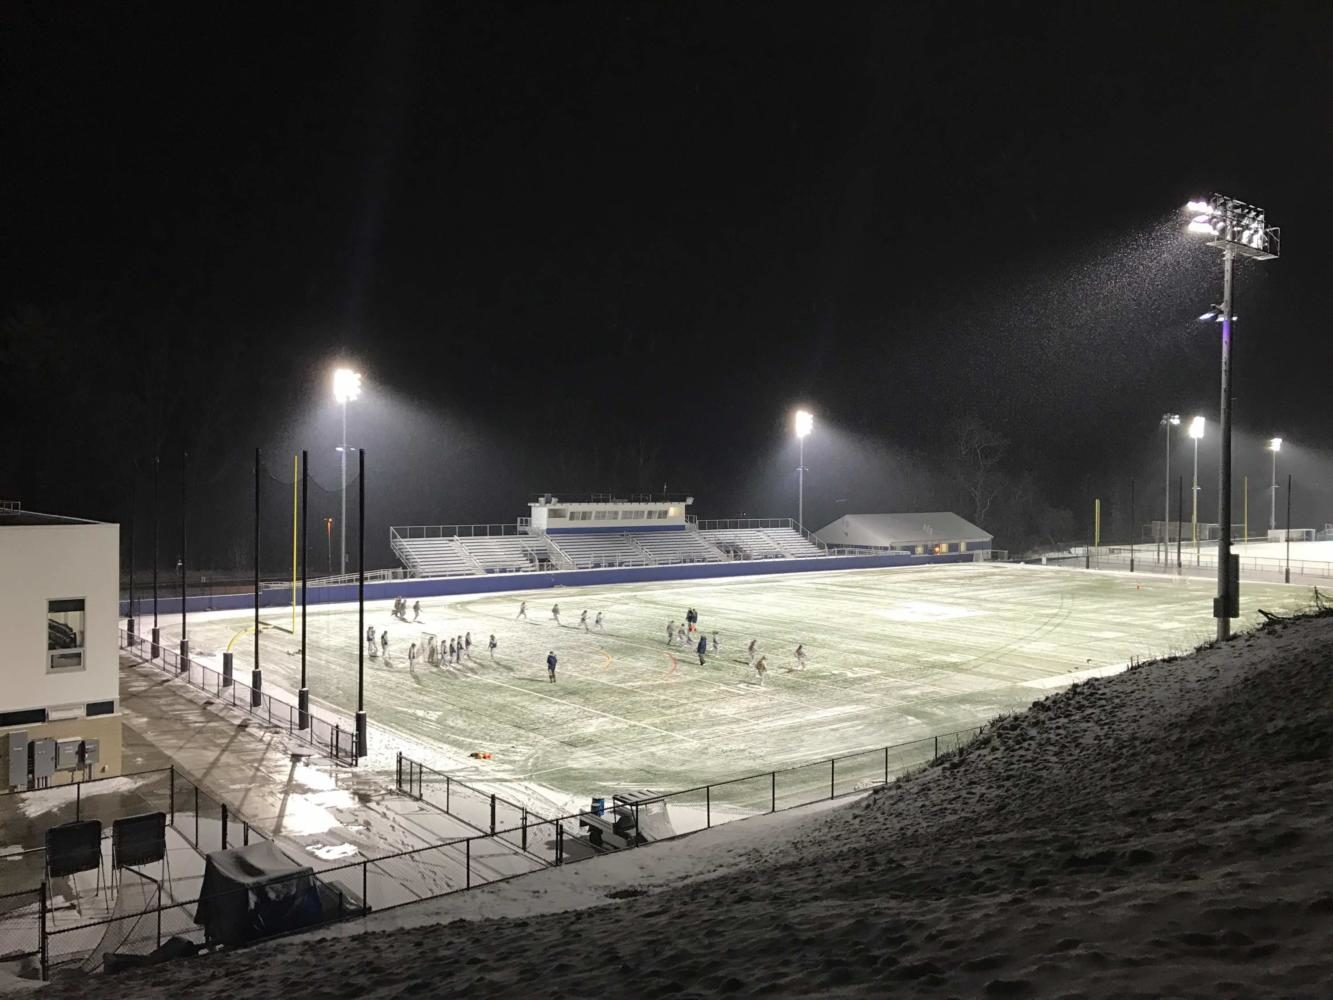 Pace%27s+football+field+at+night.+Photo+by+Joseph+Tucci